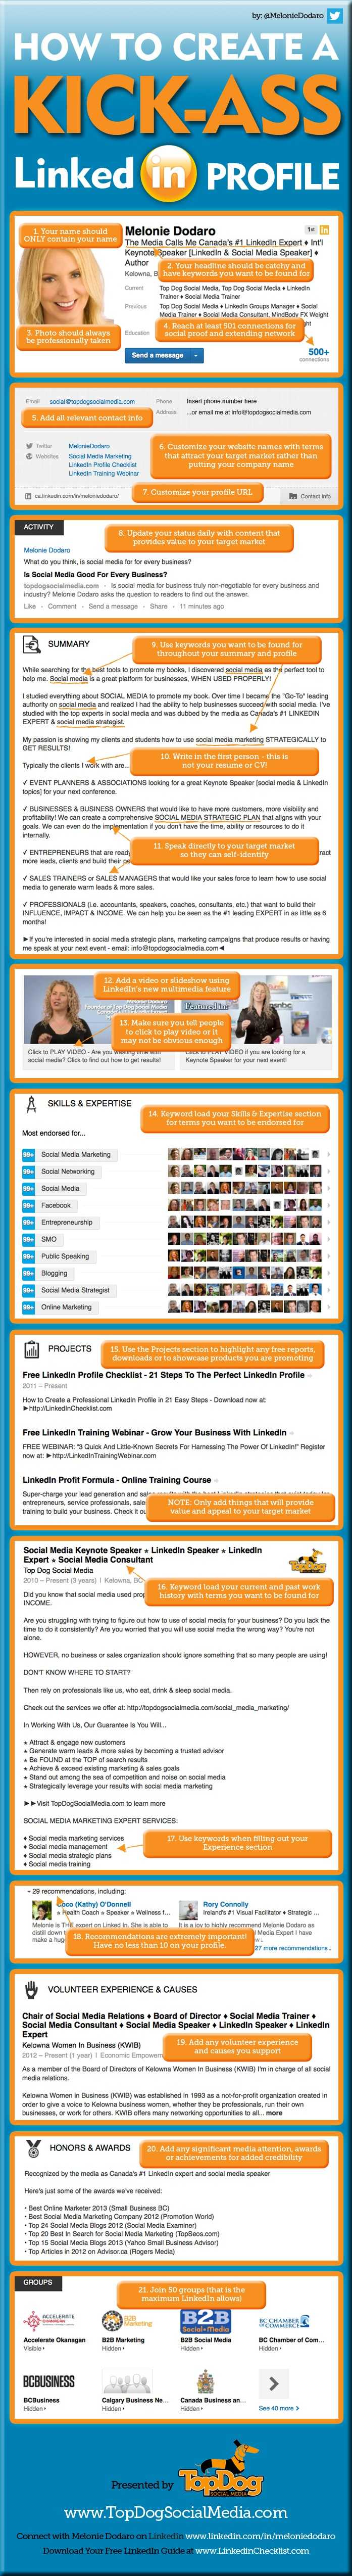 How To Create Kick-Ass Linkedin Profile